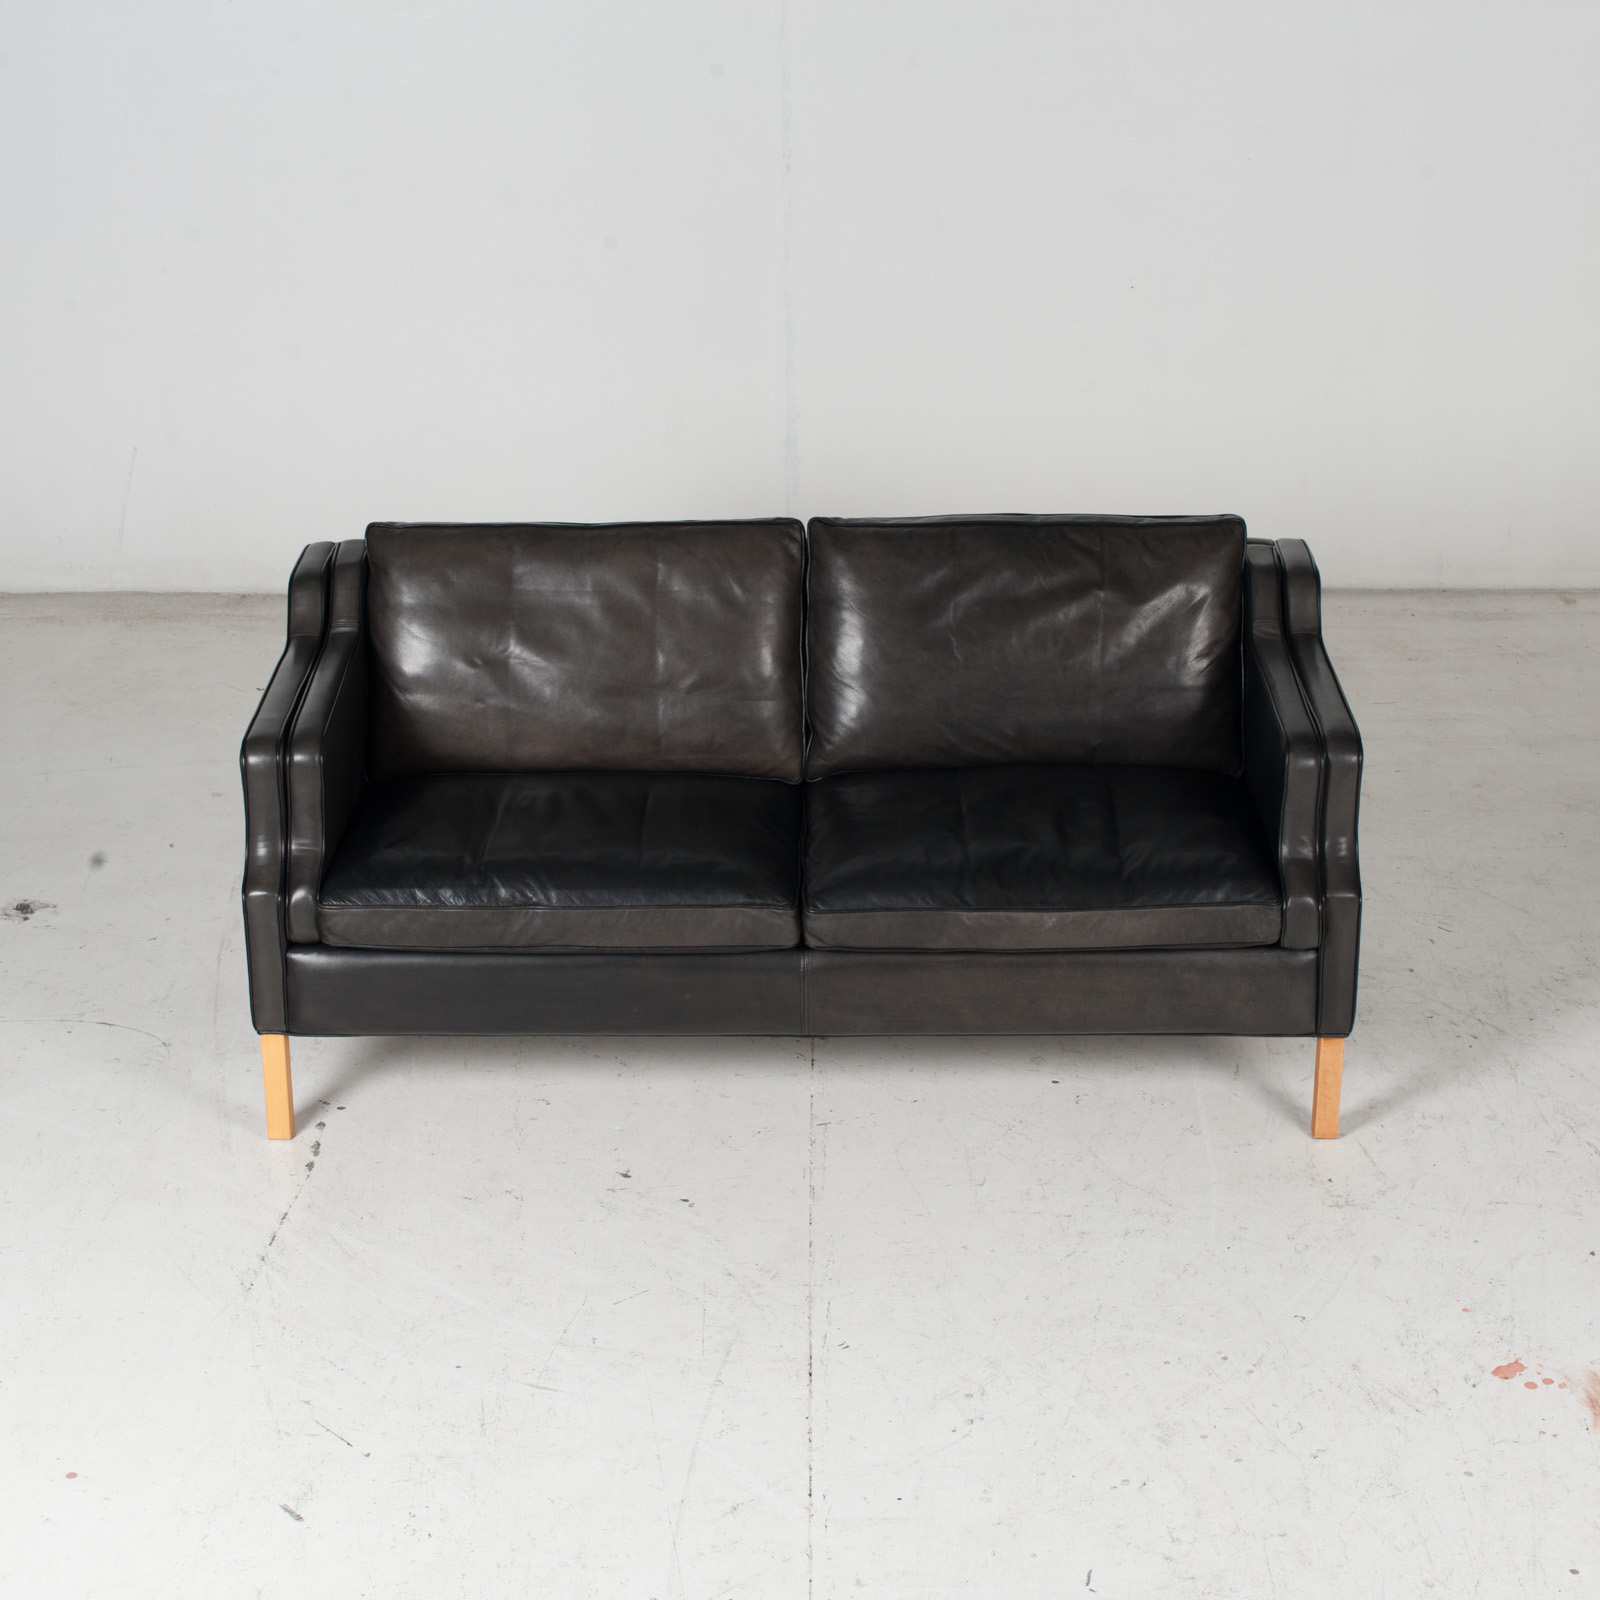 2 Seat Sofa By Stouby In Black Leather With Beech Legs, 1960s, Denmark 4